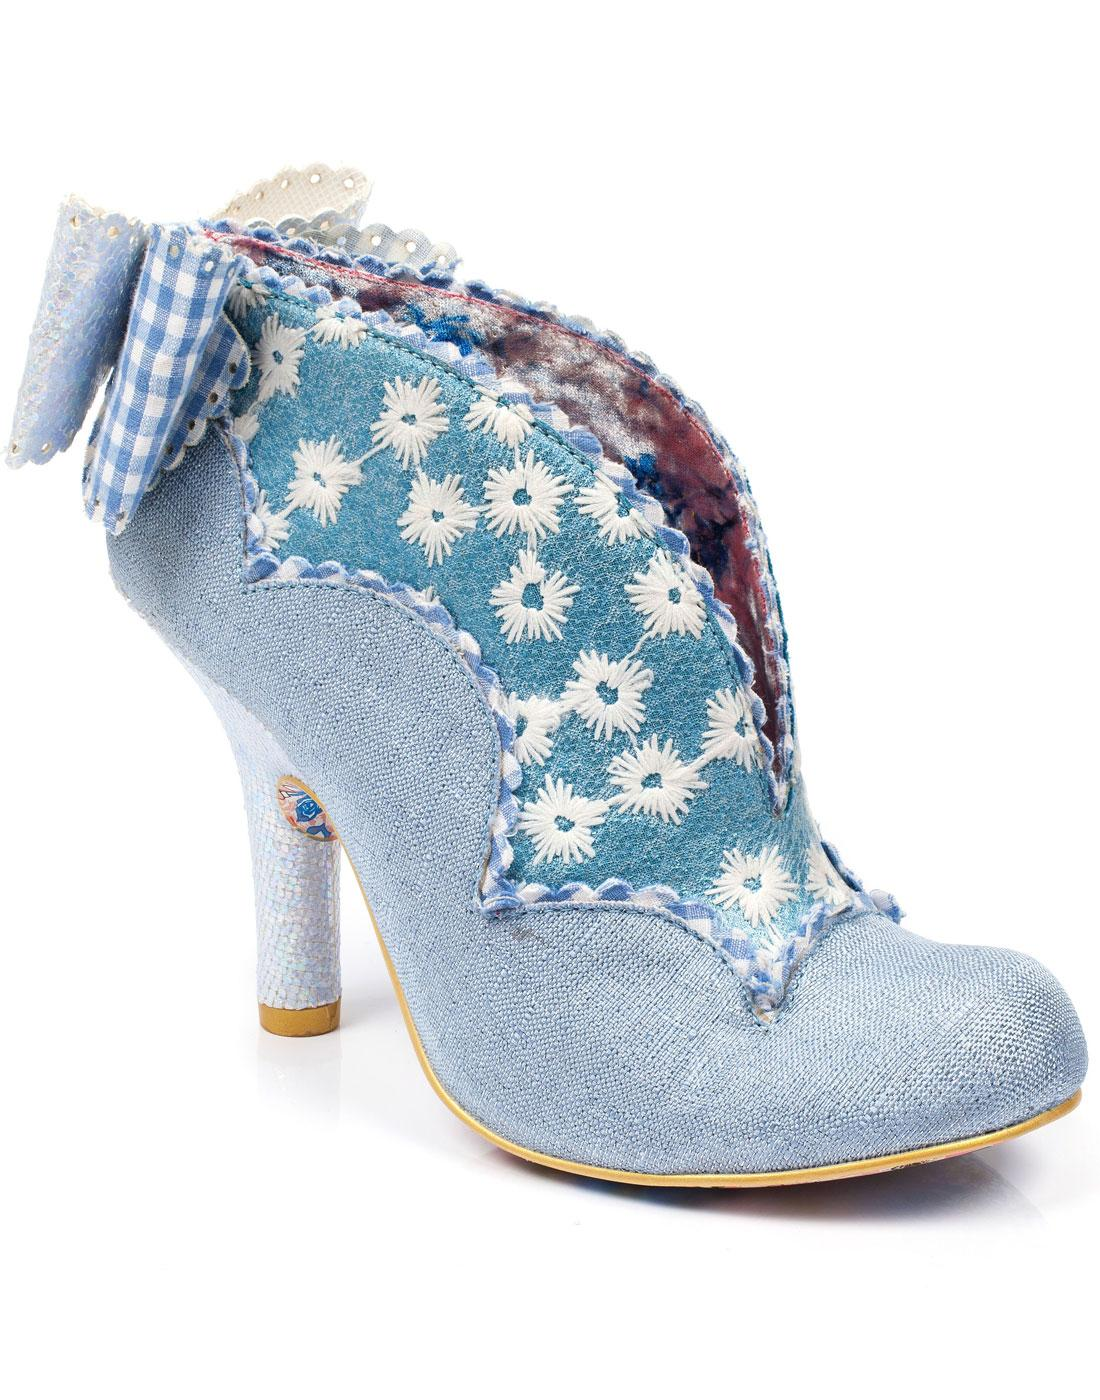 Toasted Teacake IRREGULAR Choice Floral Heels BLUE